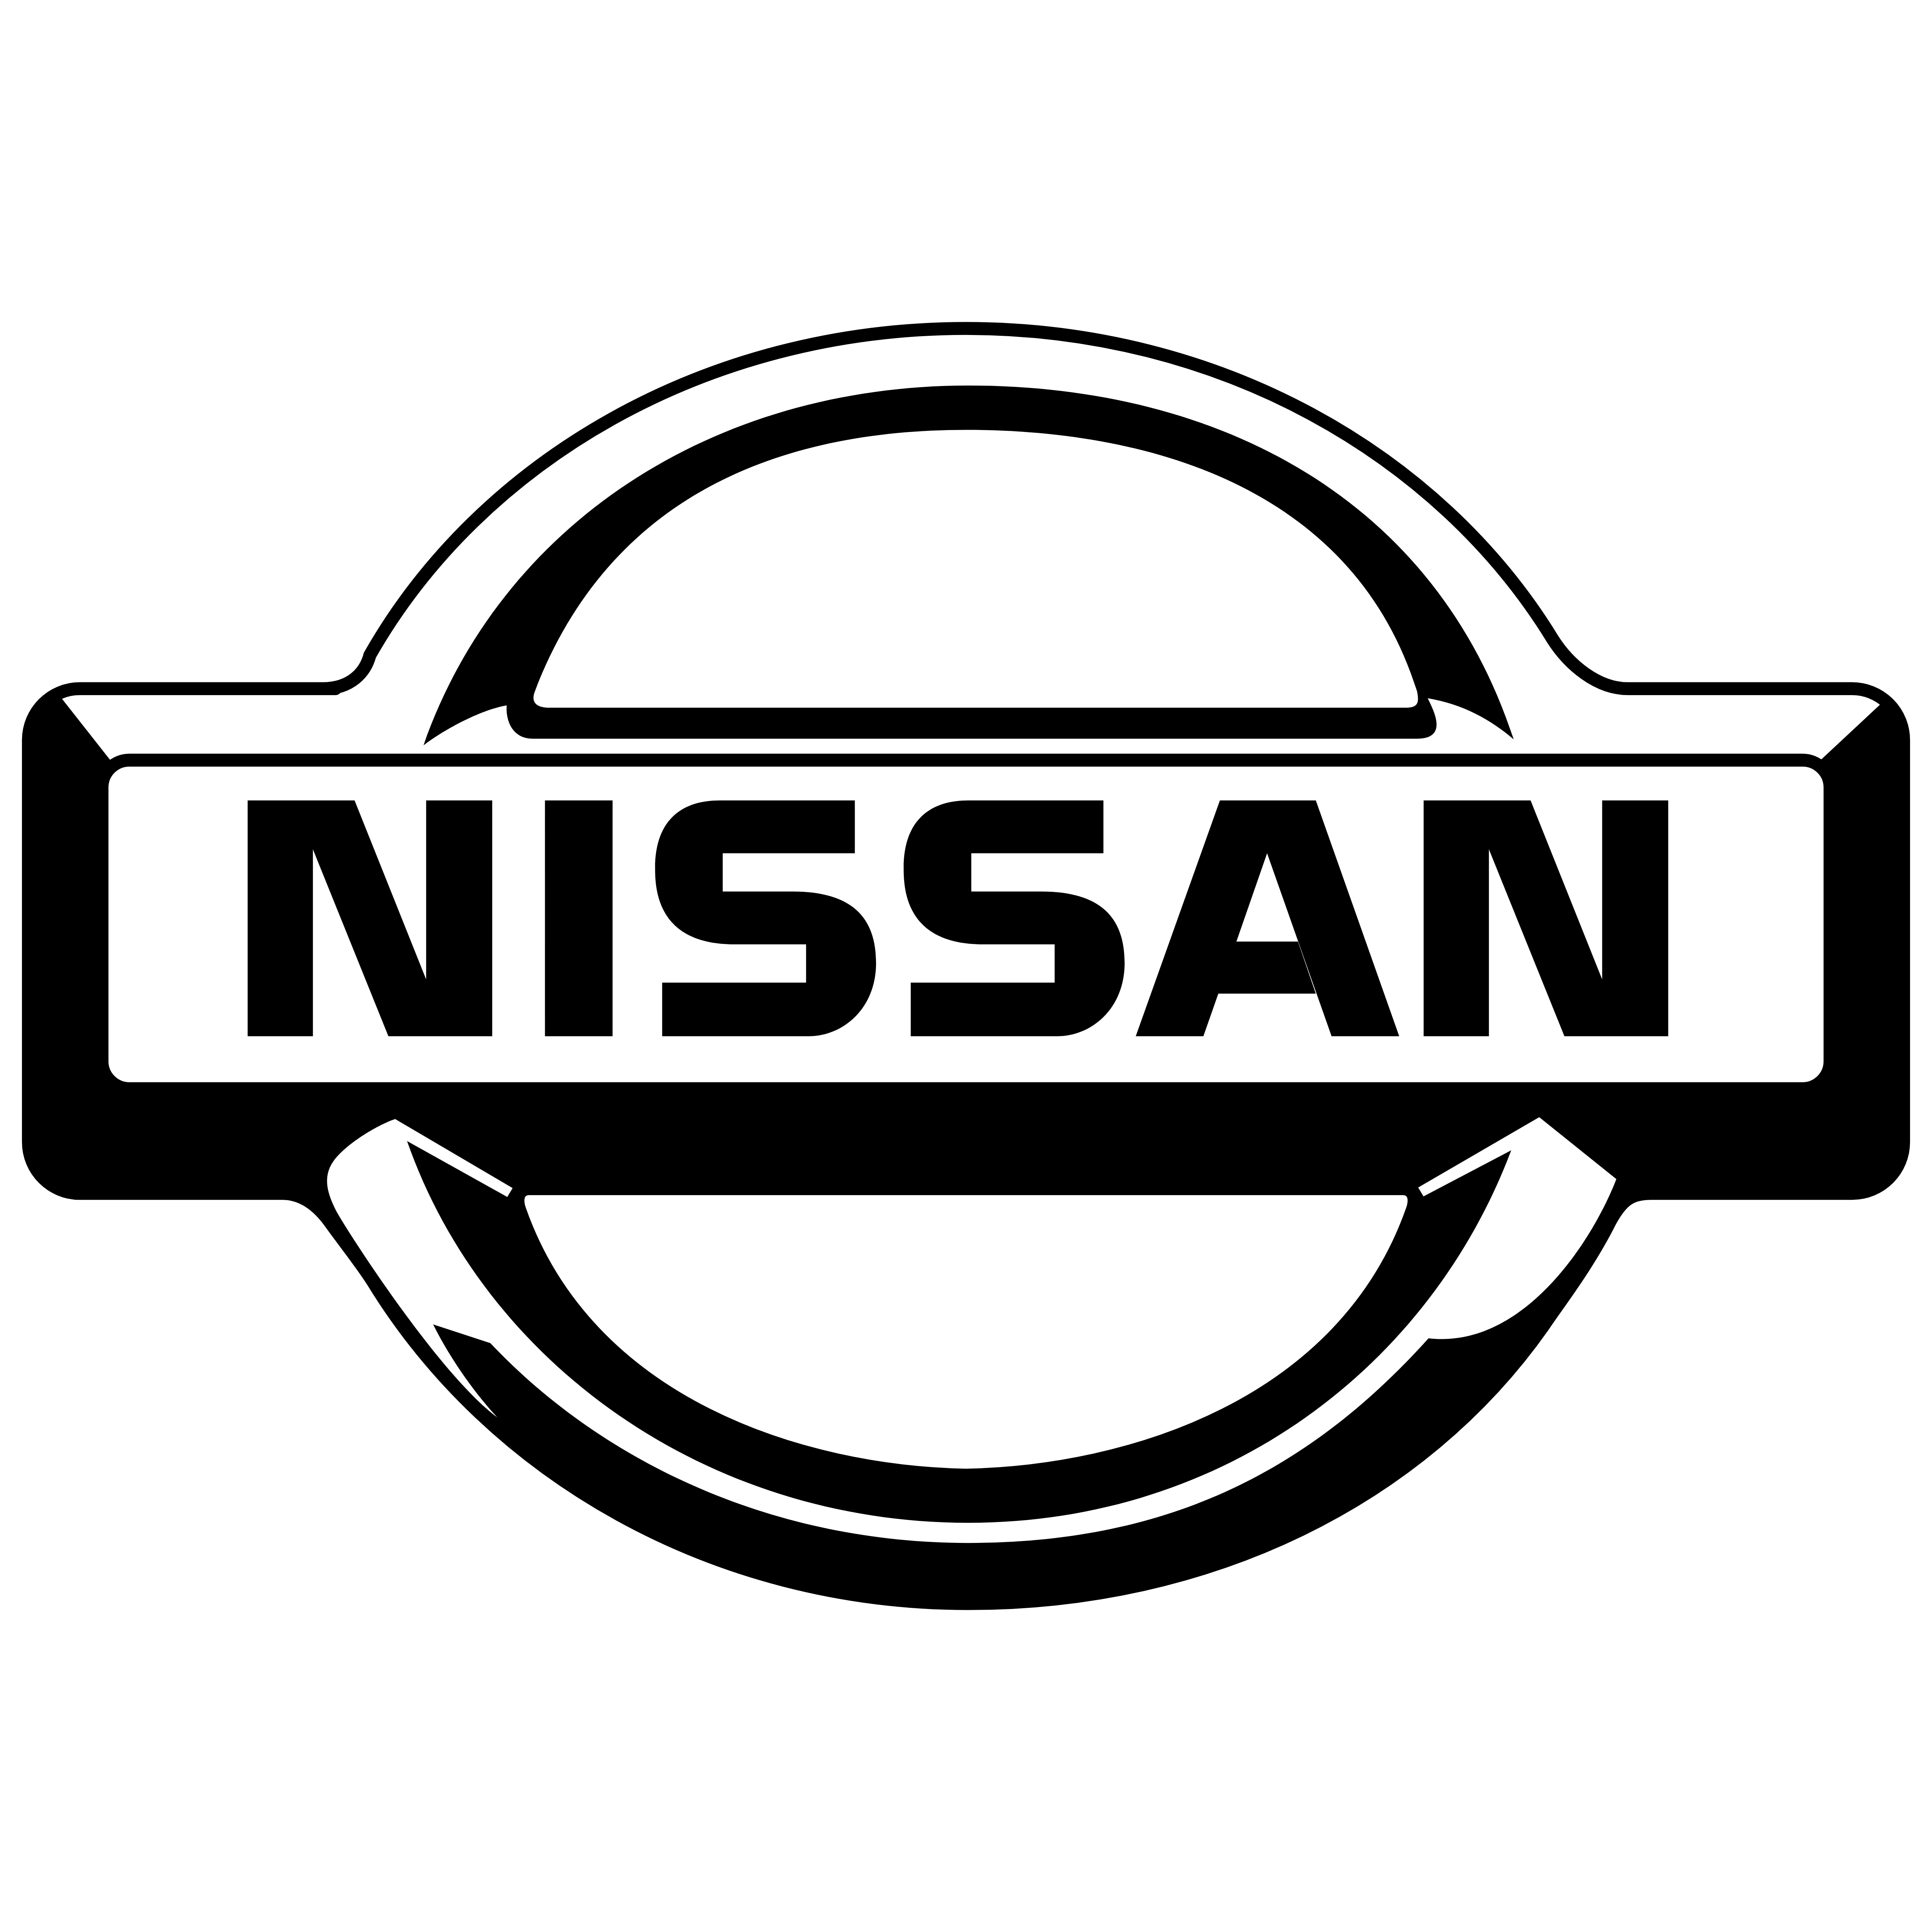 Logo nissan clipart picture library library Nissan – Logos Download picture library library